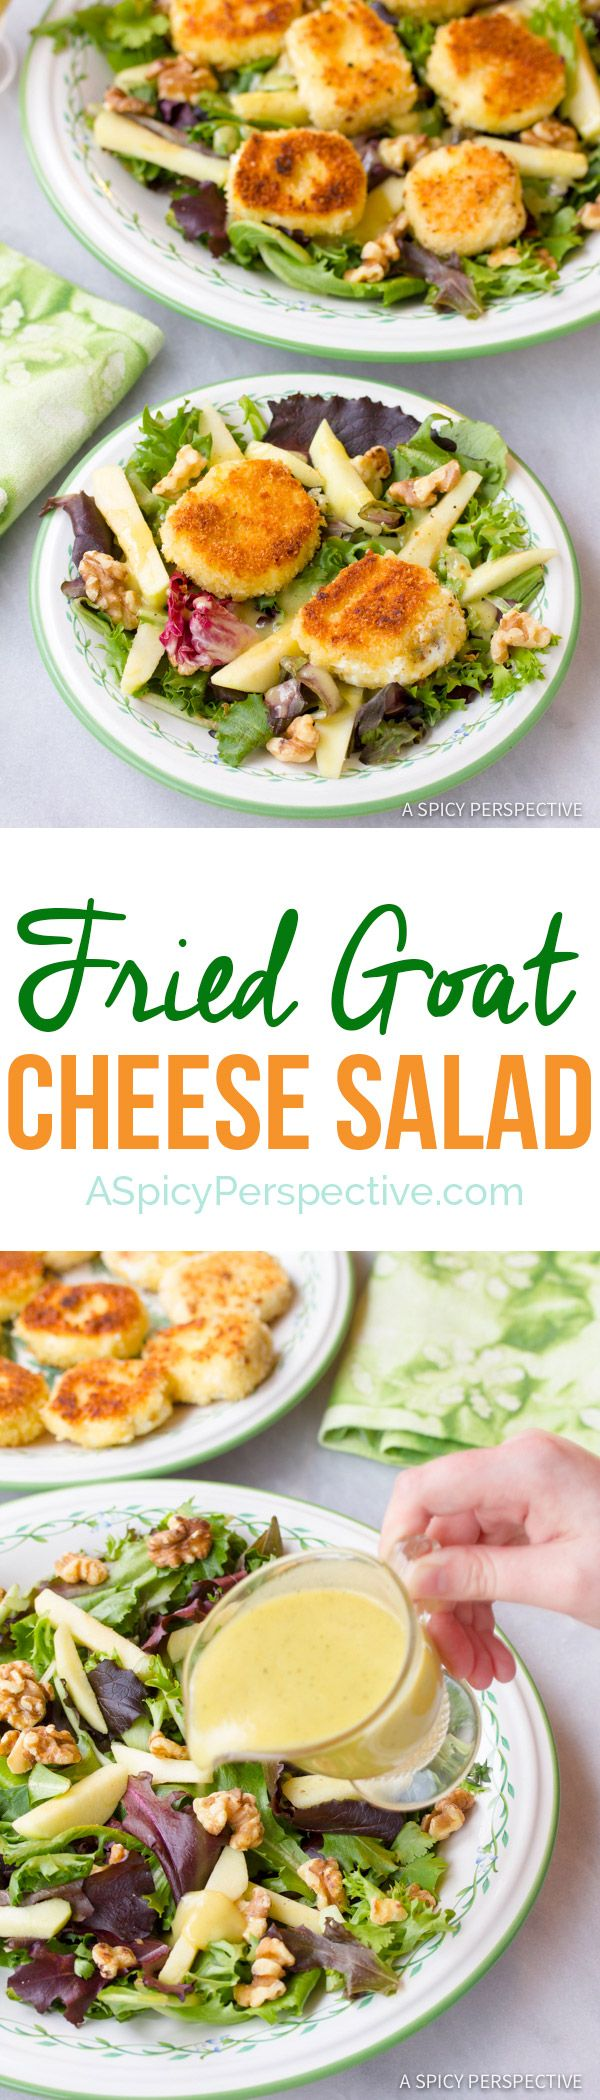 The Ultimate Fried Goat Cheese Salad | ASpicyPerspective.com